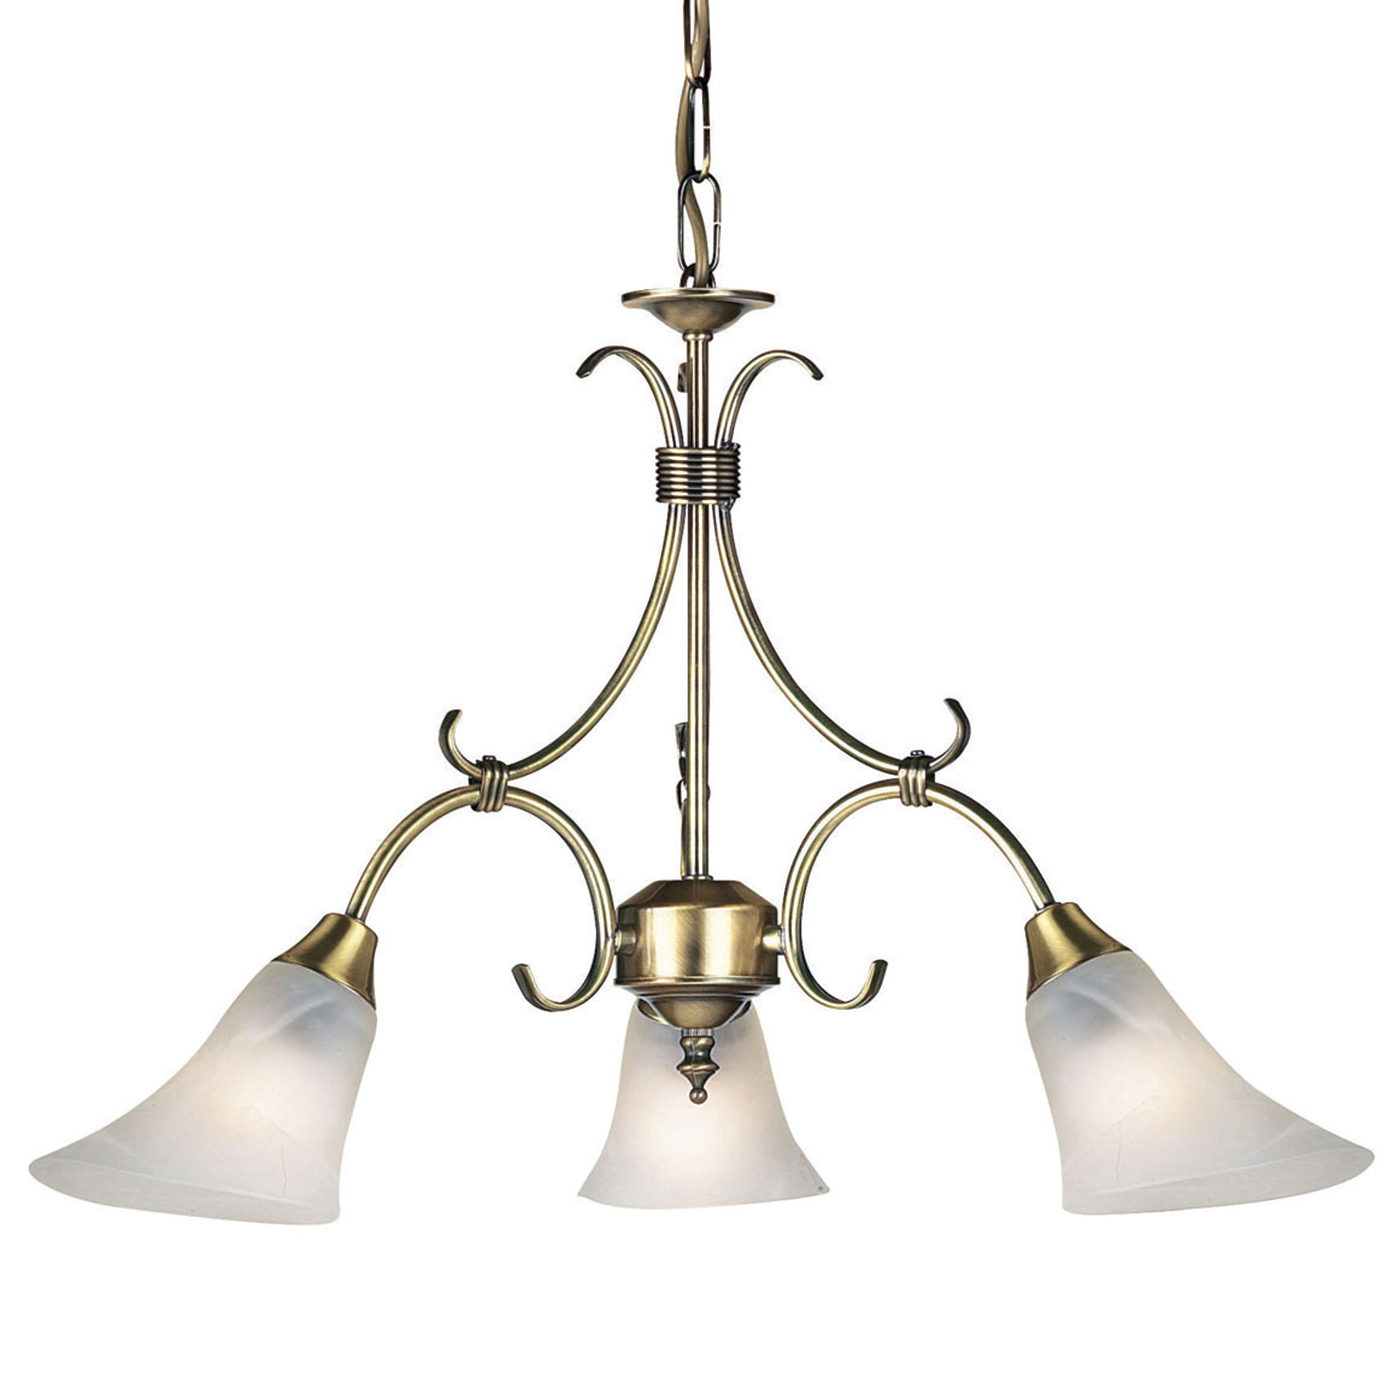 Endon Hardwick pendant 3x 40W Antique brass effect plate & frosted glass